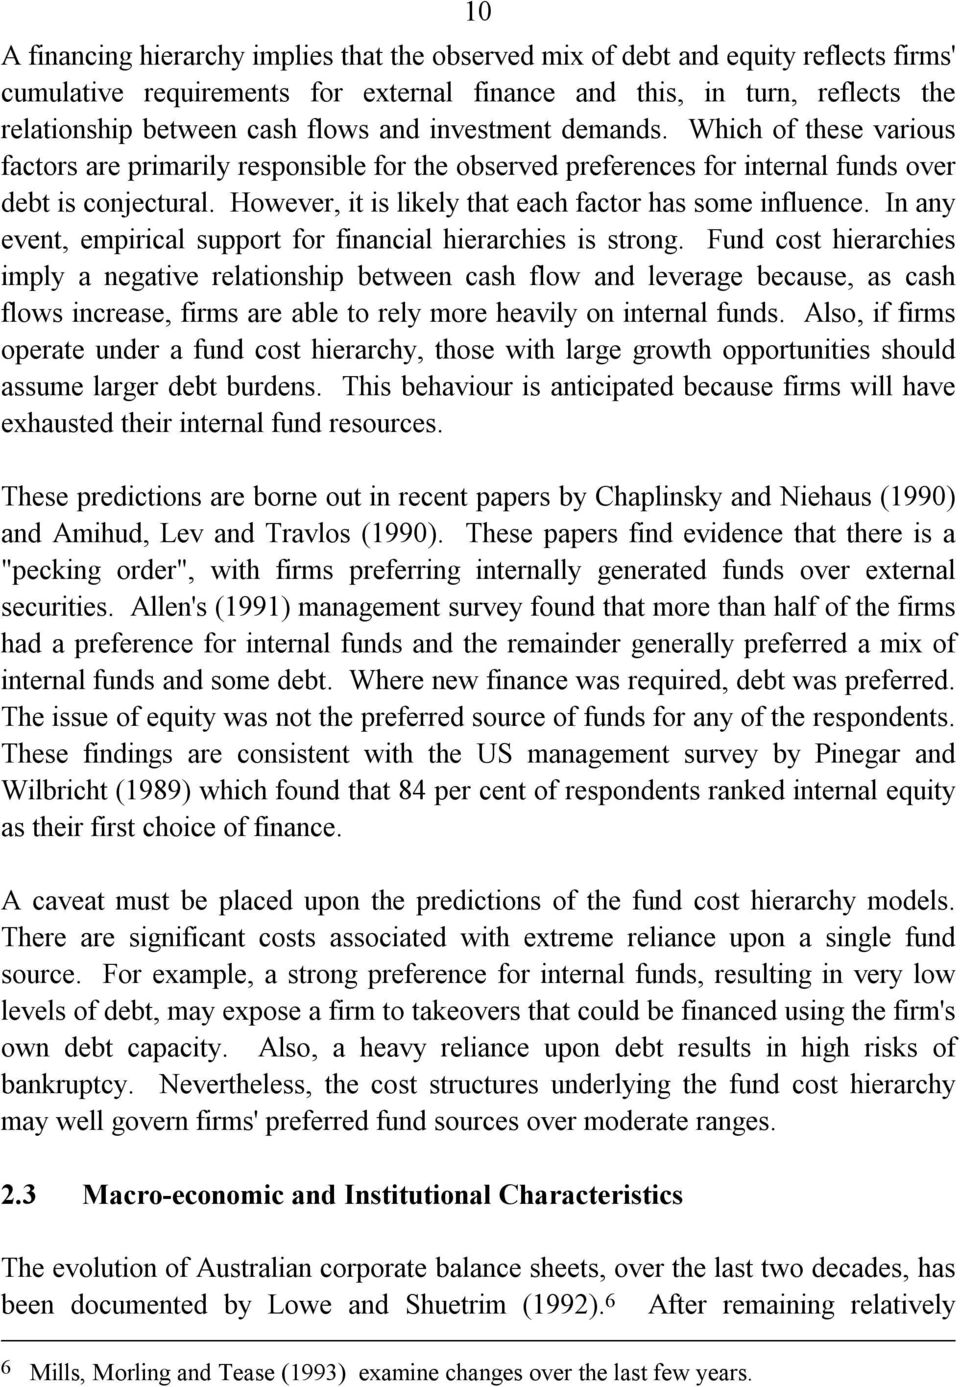 However, it is likely that each factor has some influence. In any event, empirical support for financial hierarchies is strong.